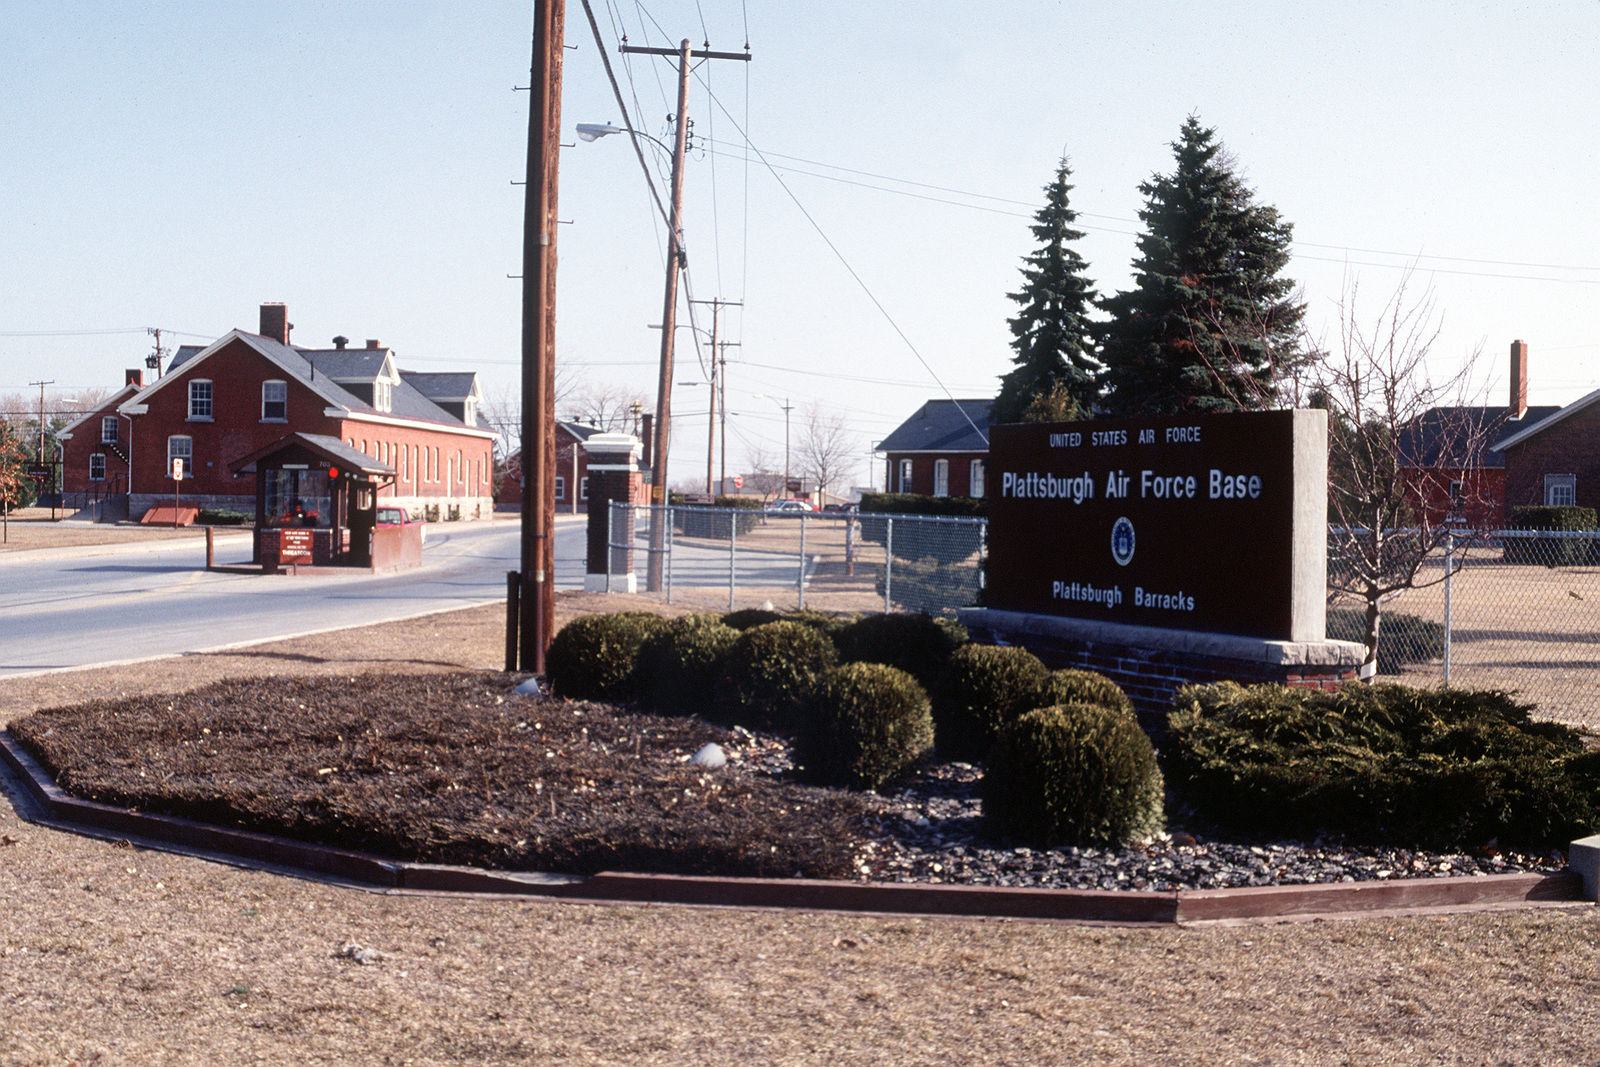 A view of the sign at the Plattsburgh Barracks gate, the entrance to the old side of the base. Plattsburgh is the oldest active military installation in the United States, established in 1814. It has been an Air Force base since 1955